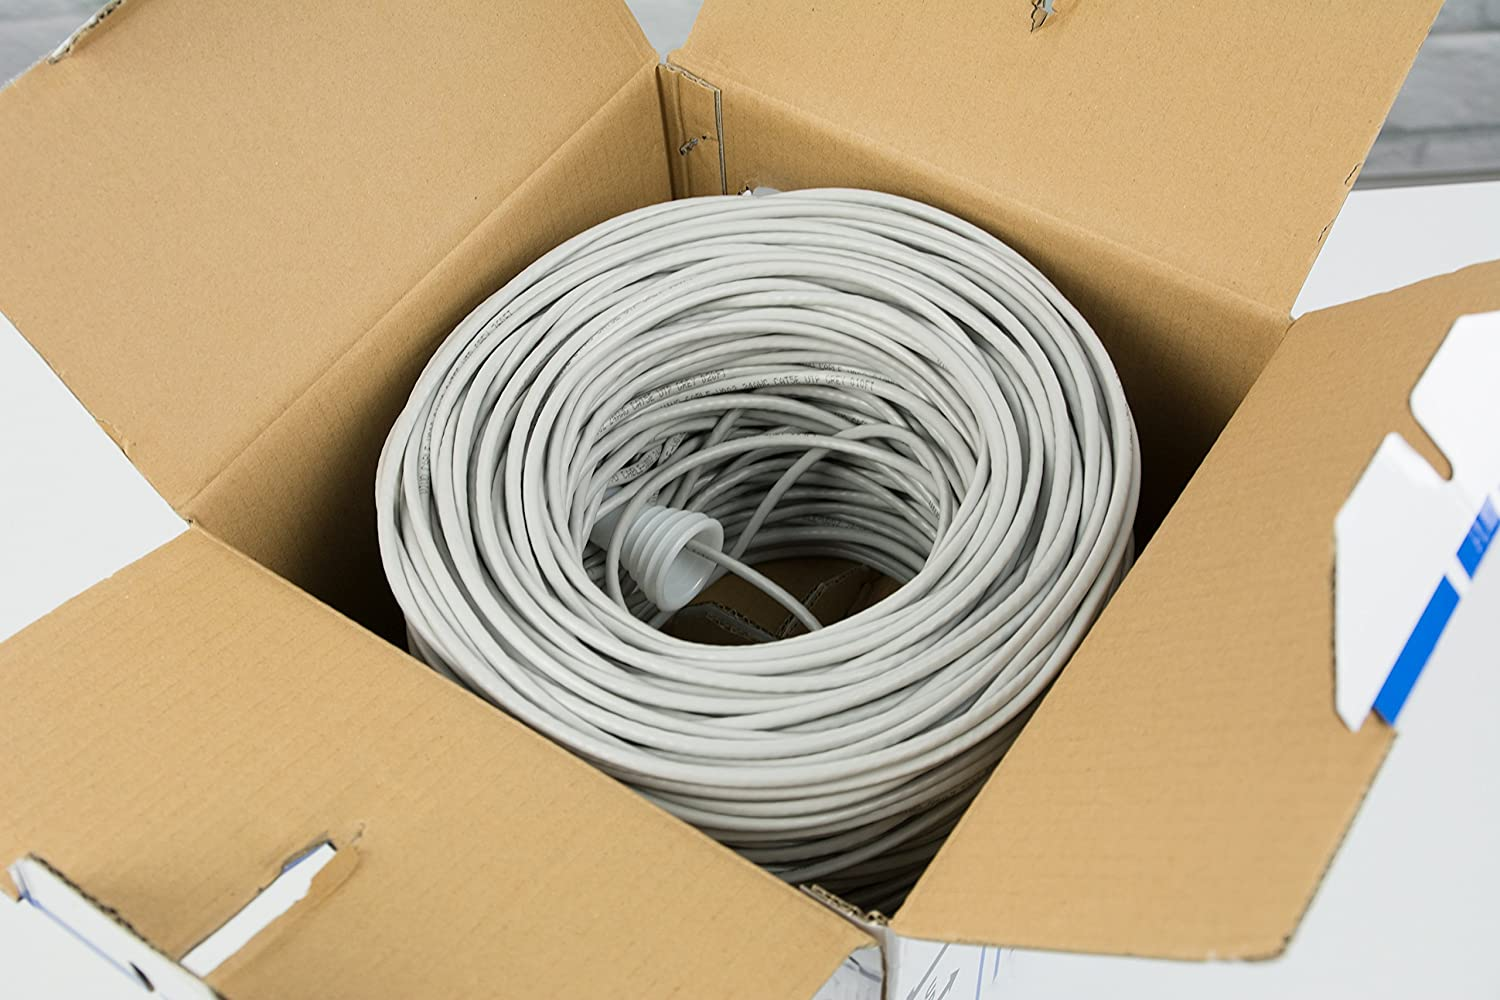 New 500 Ft Bulk Cat5e Ethernet Cable Wire Utp Pull Box Internet Wiring 500ft Cat 5e Grey Vivo V002 Computers Accessories